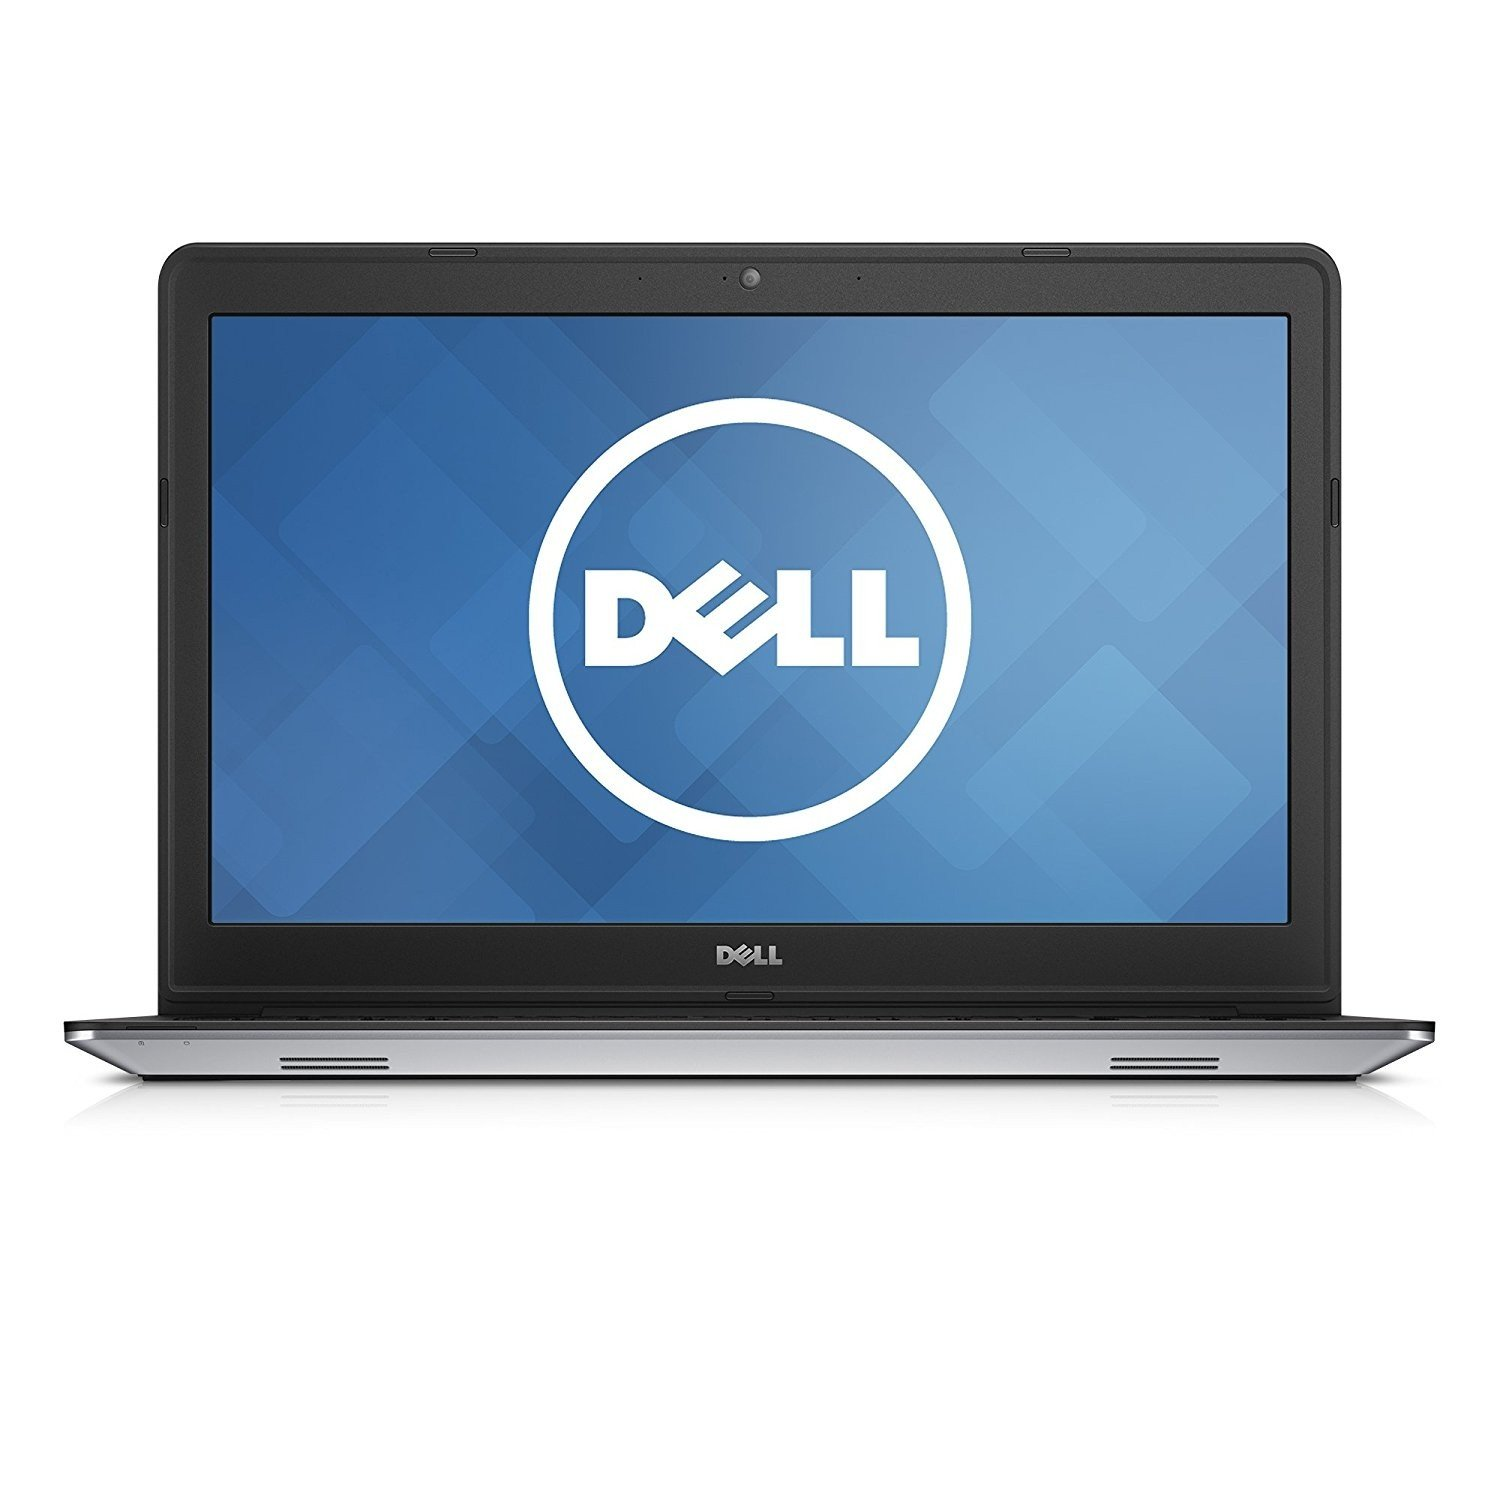 DELL INSPIRON 15 5000 SERIES (5567) (I5-8250U / 8GB RAM / 256GB SSD / INTEL HD GRAPHICS / FHD / WIN10) фото 1 магазина компьютерной техники luckylink.kiev.ua.